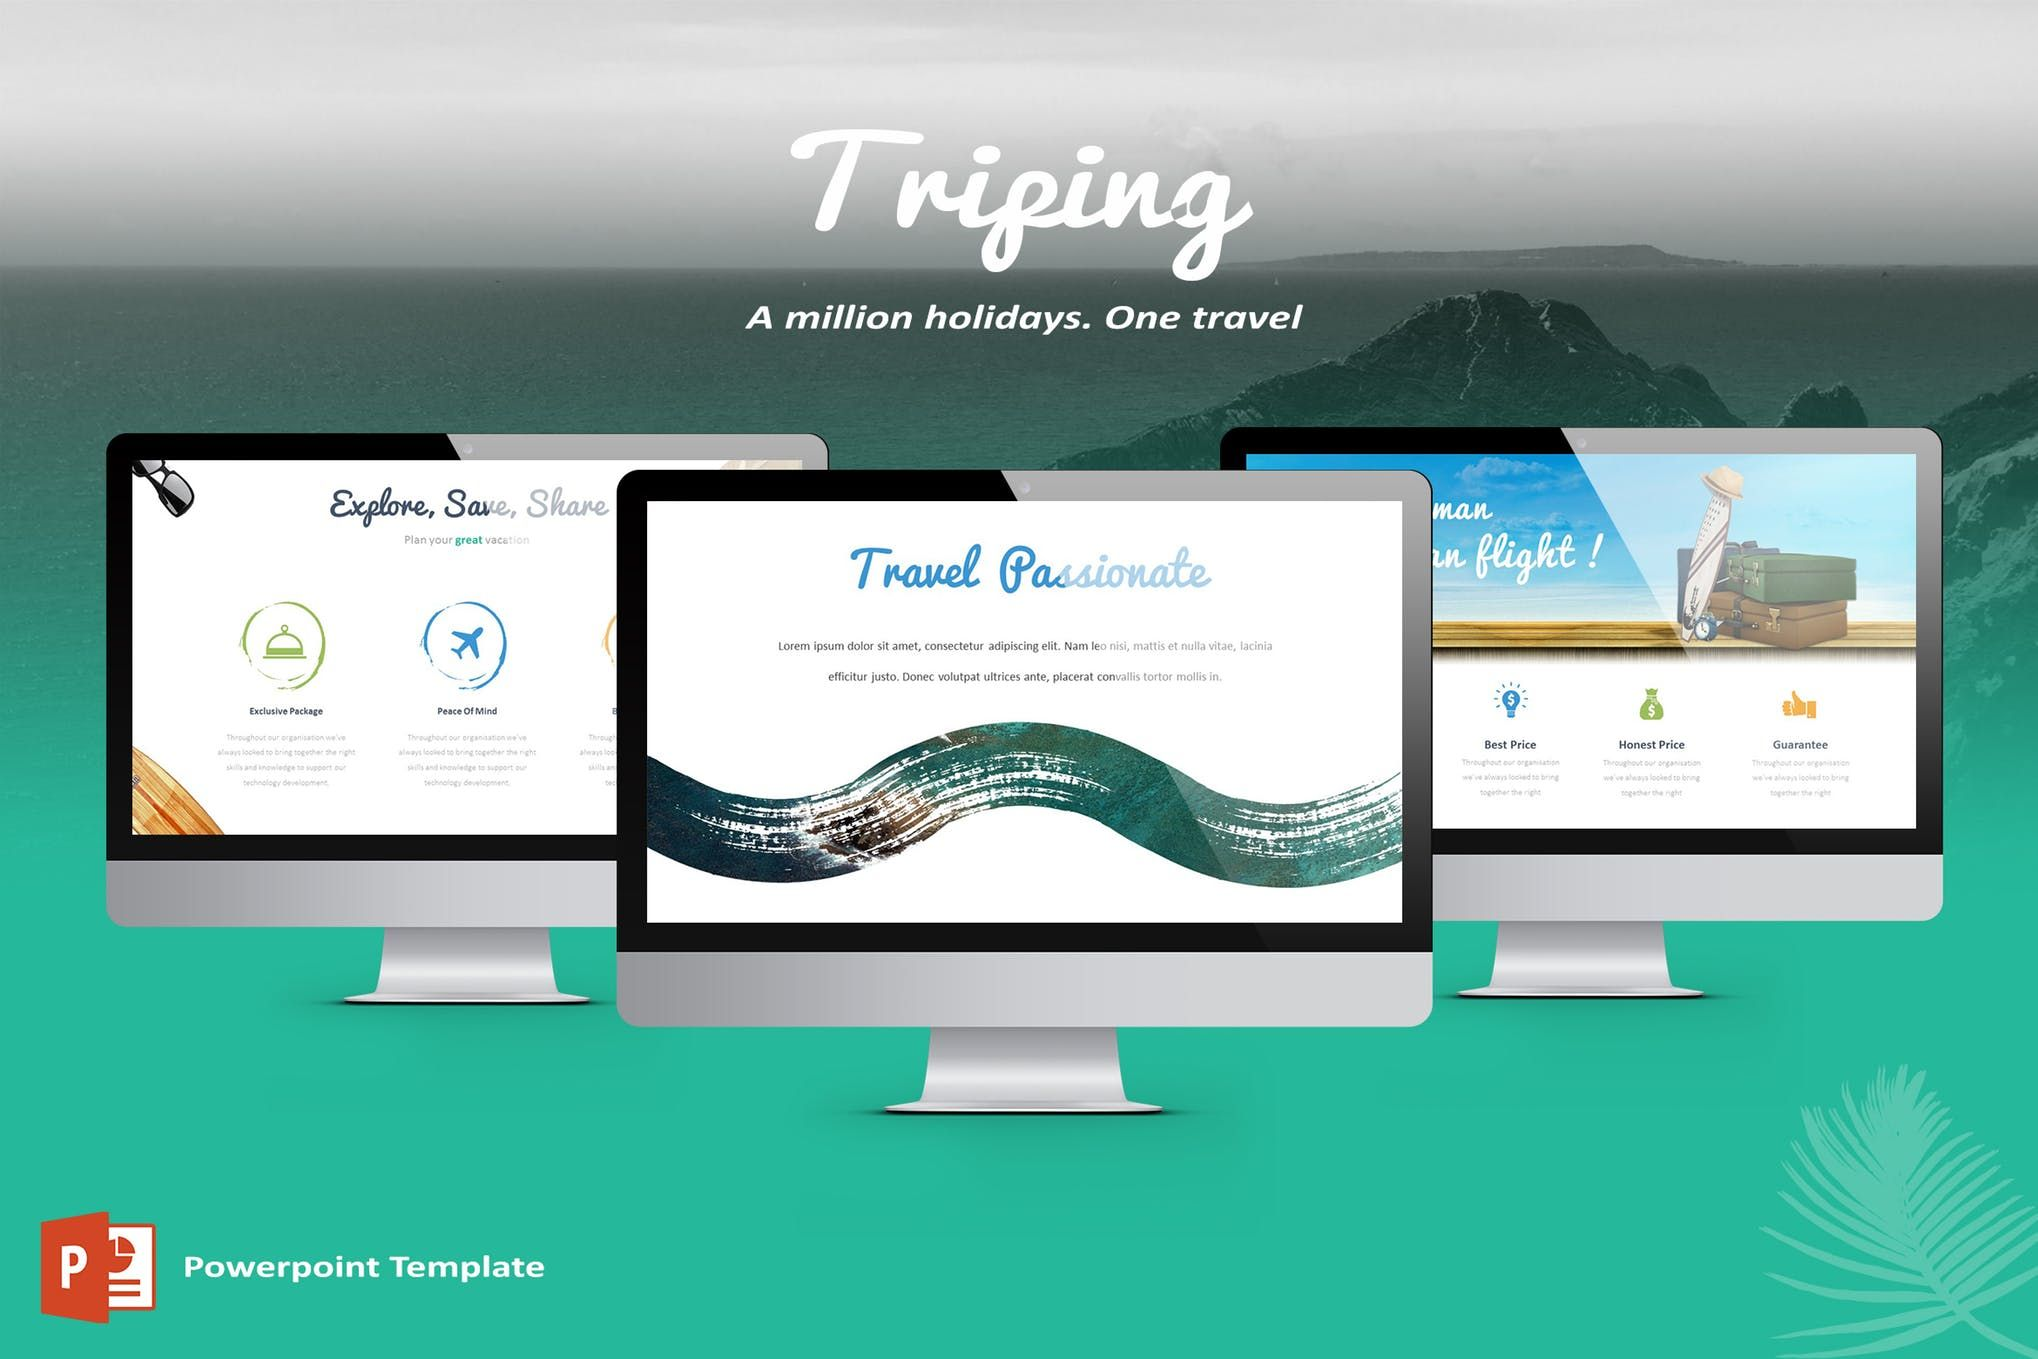 Triping Travel Powerpoint Template Safety Pinterest